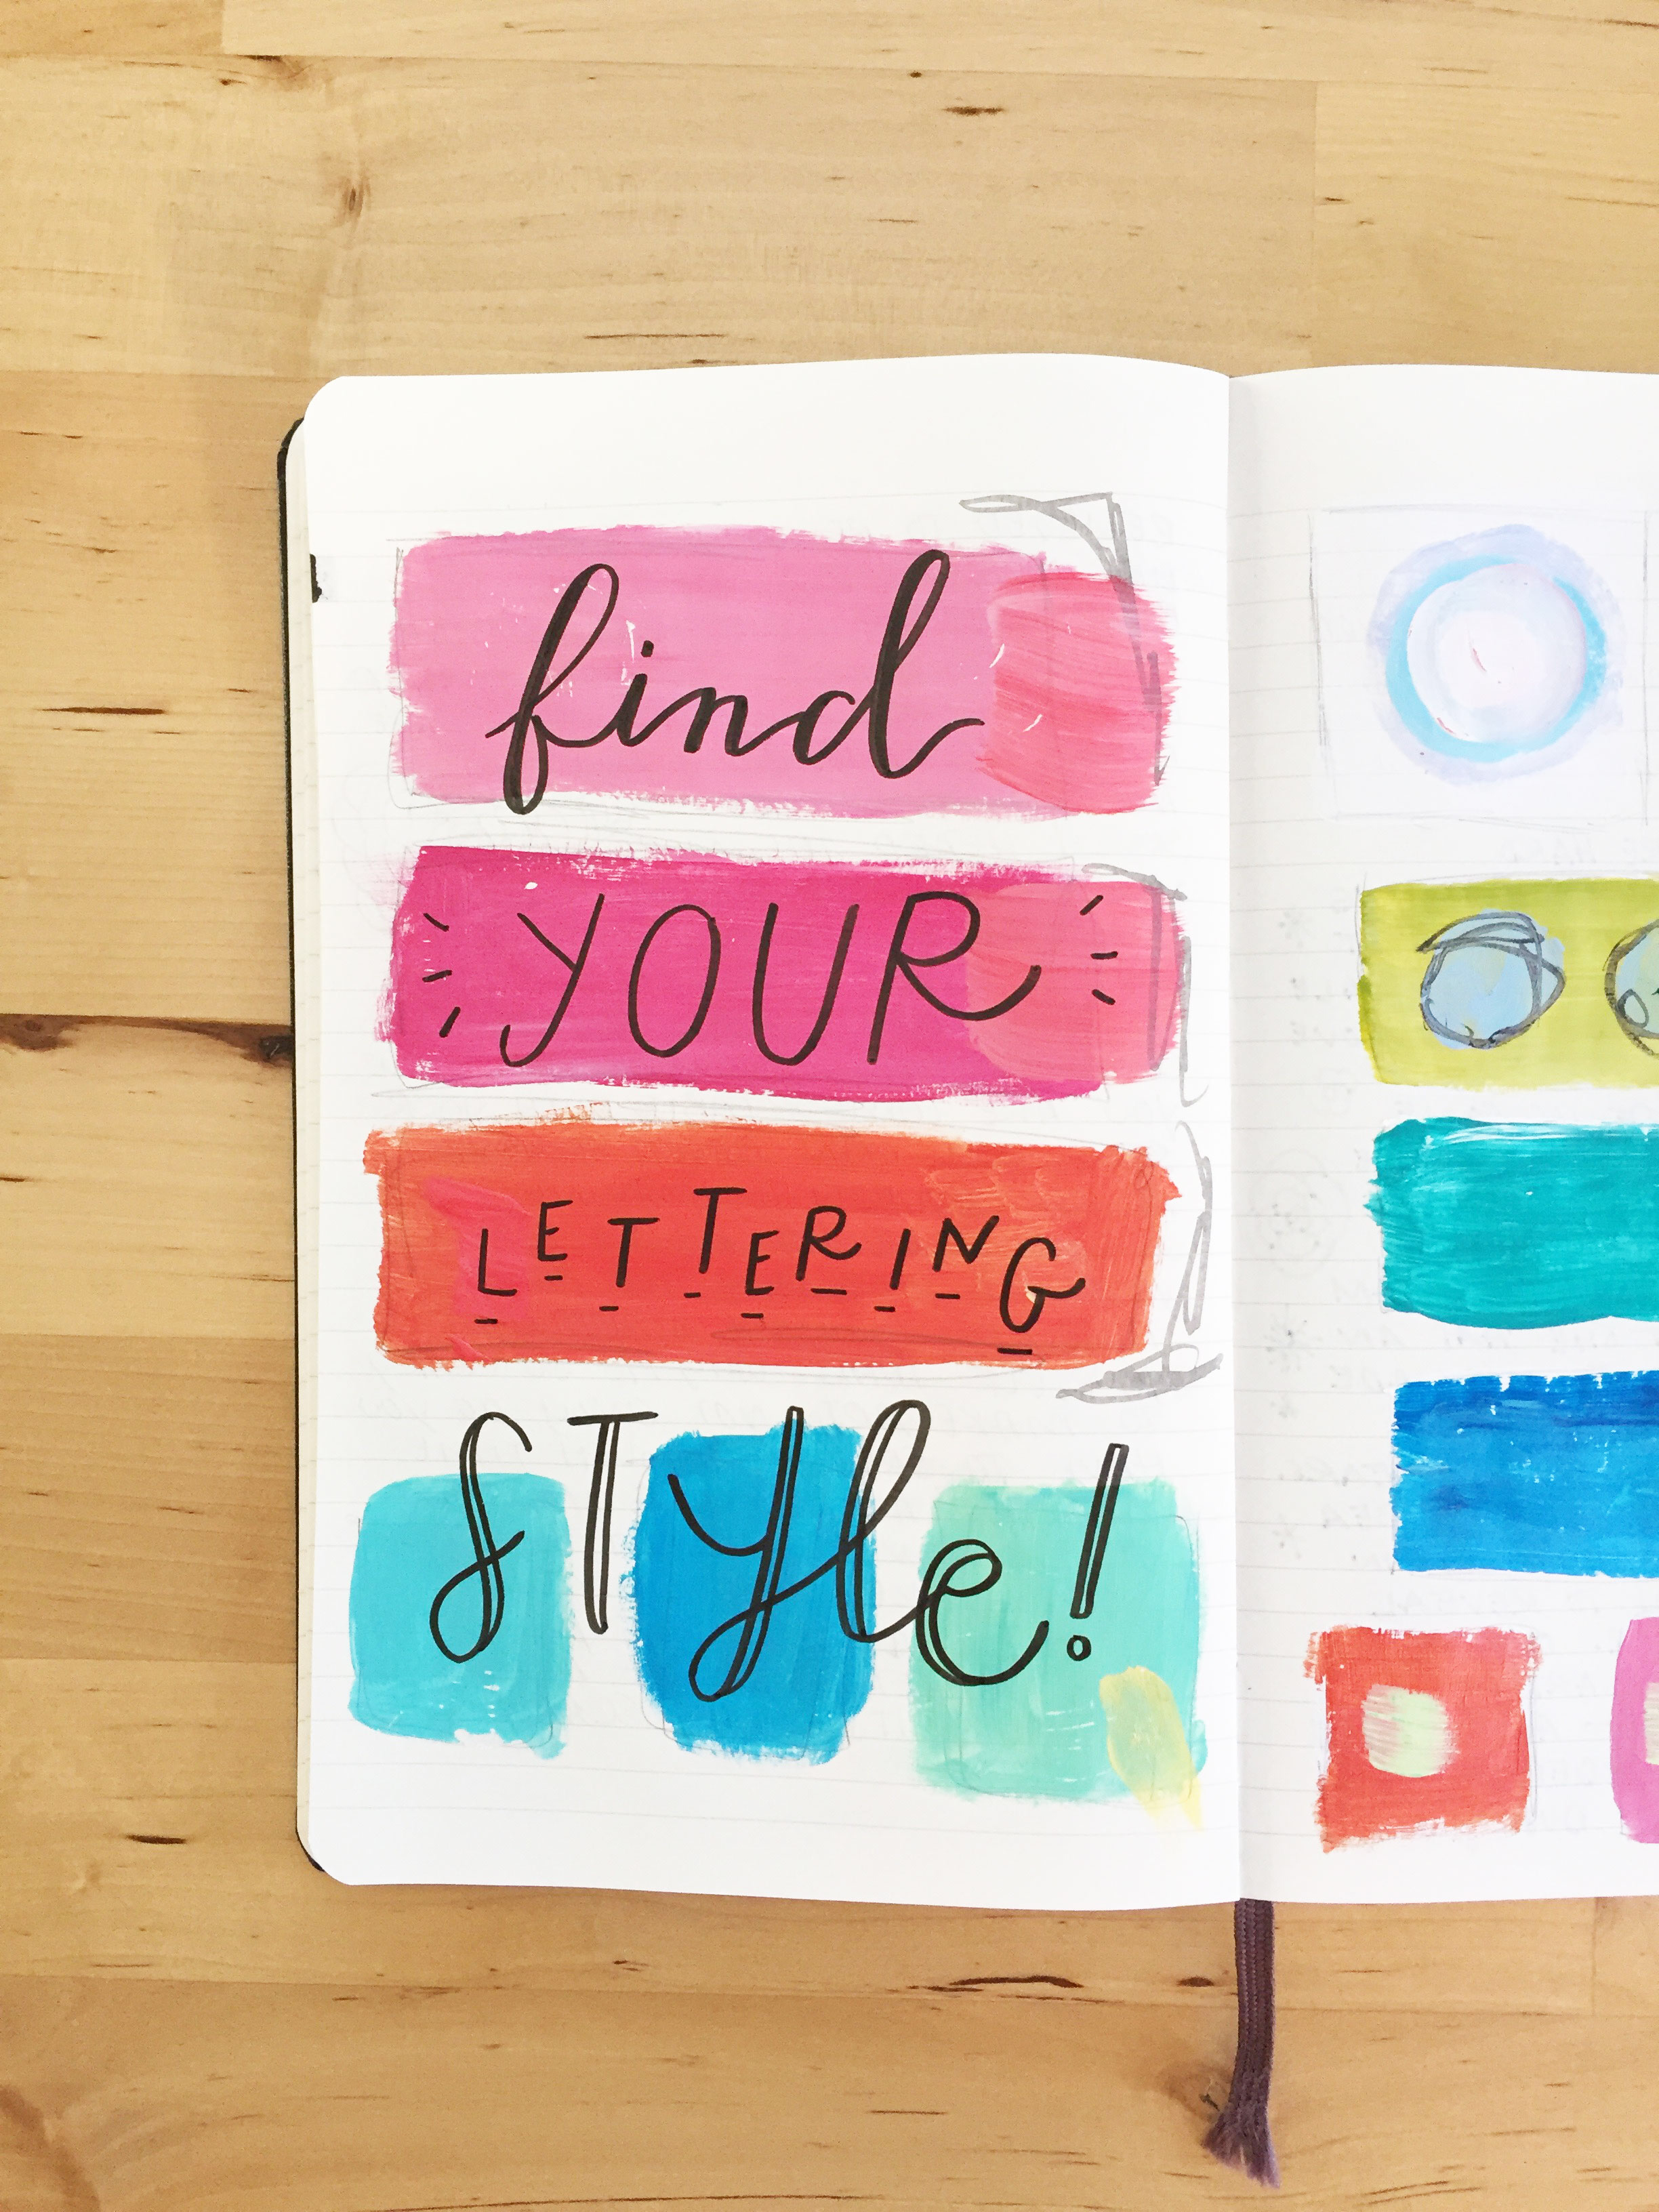 find-your-hand-lettering-style.jpg